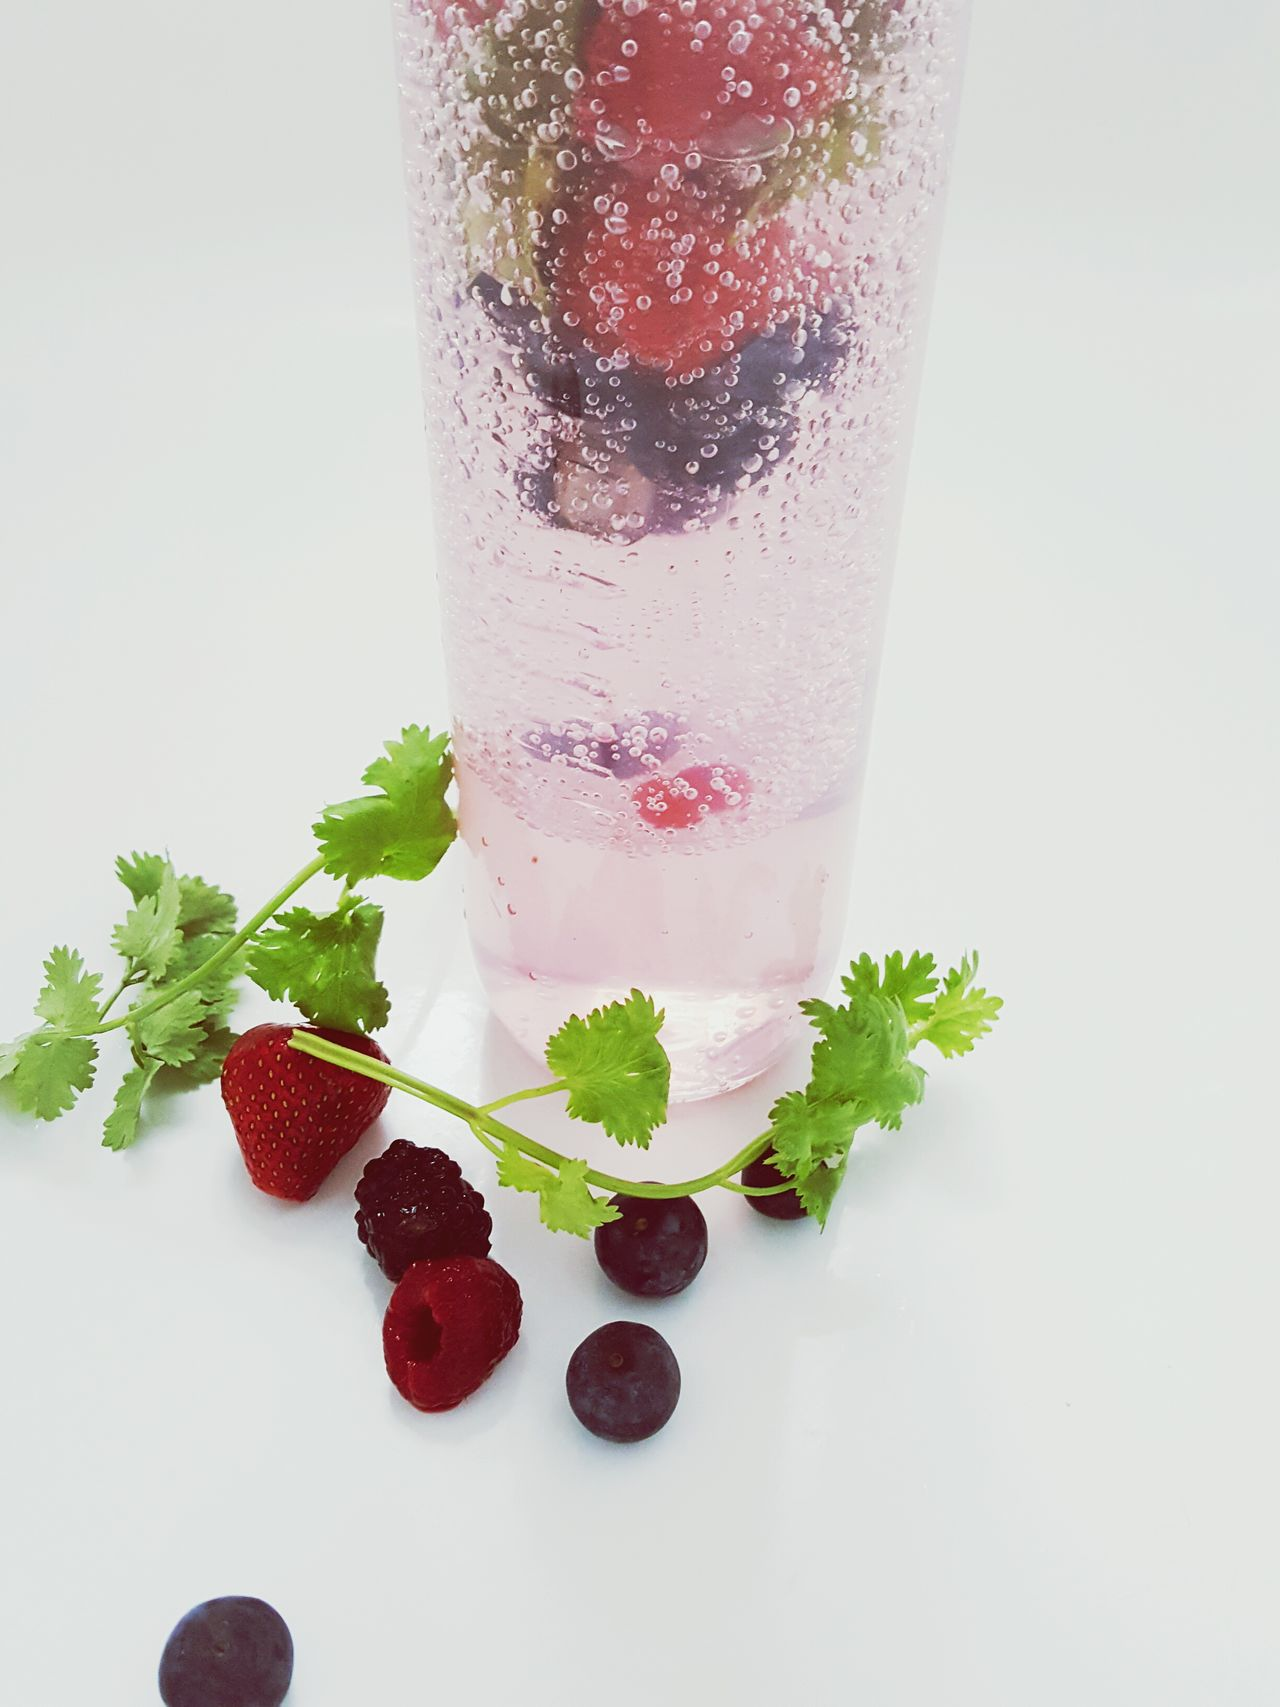 I love to Pimp My Water with Fresh Fruits Coriander Blueberries Strawberries Freshness Water Pimp Pimp Your Water Fresh Cilantro Strawberry Blueberry Huckleberry Bilberry Bilberries Food Foodporn Food Porn Food And Drink Healthy Food Healthy Healthy Lifestyle Healthy Eating Drink